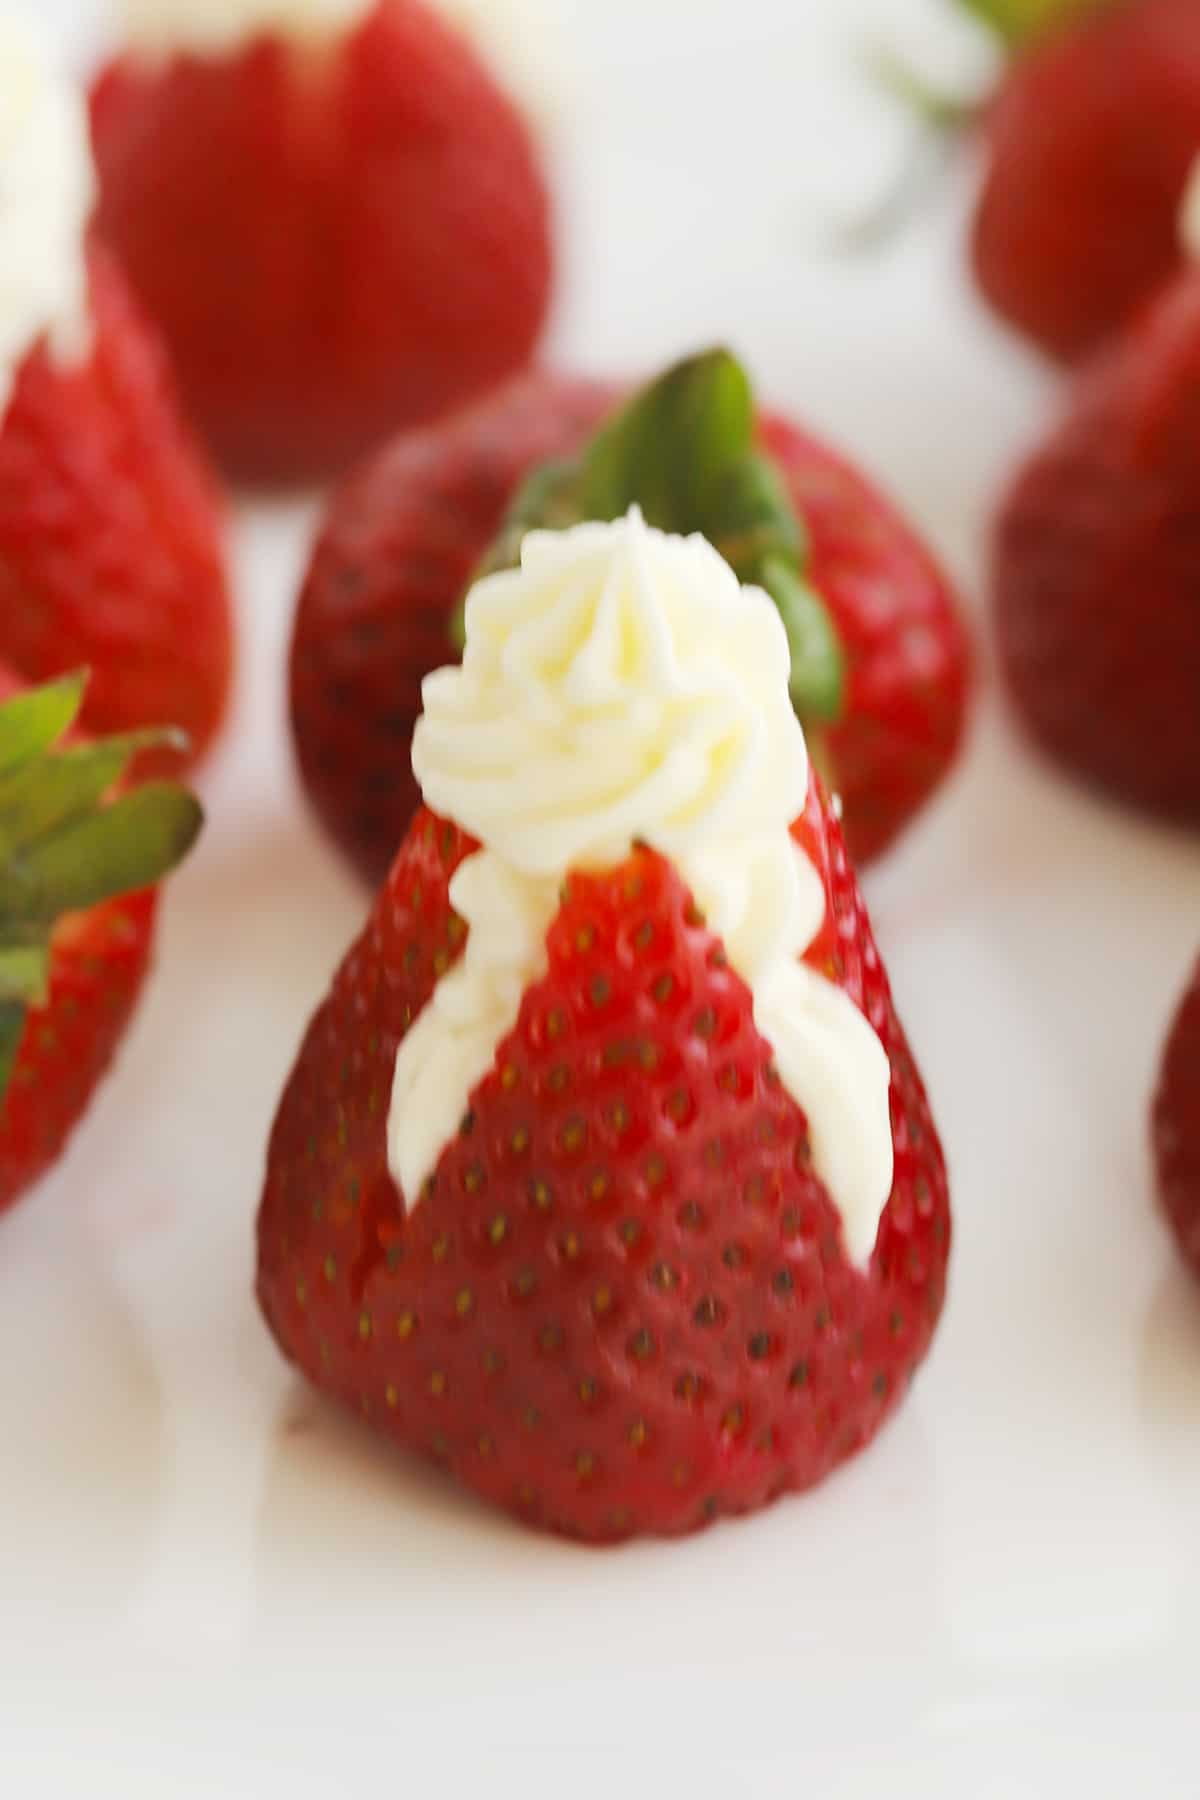 Strawberries cut open and stuffed with cream cheese filling.